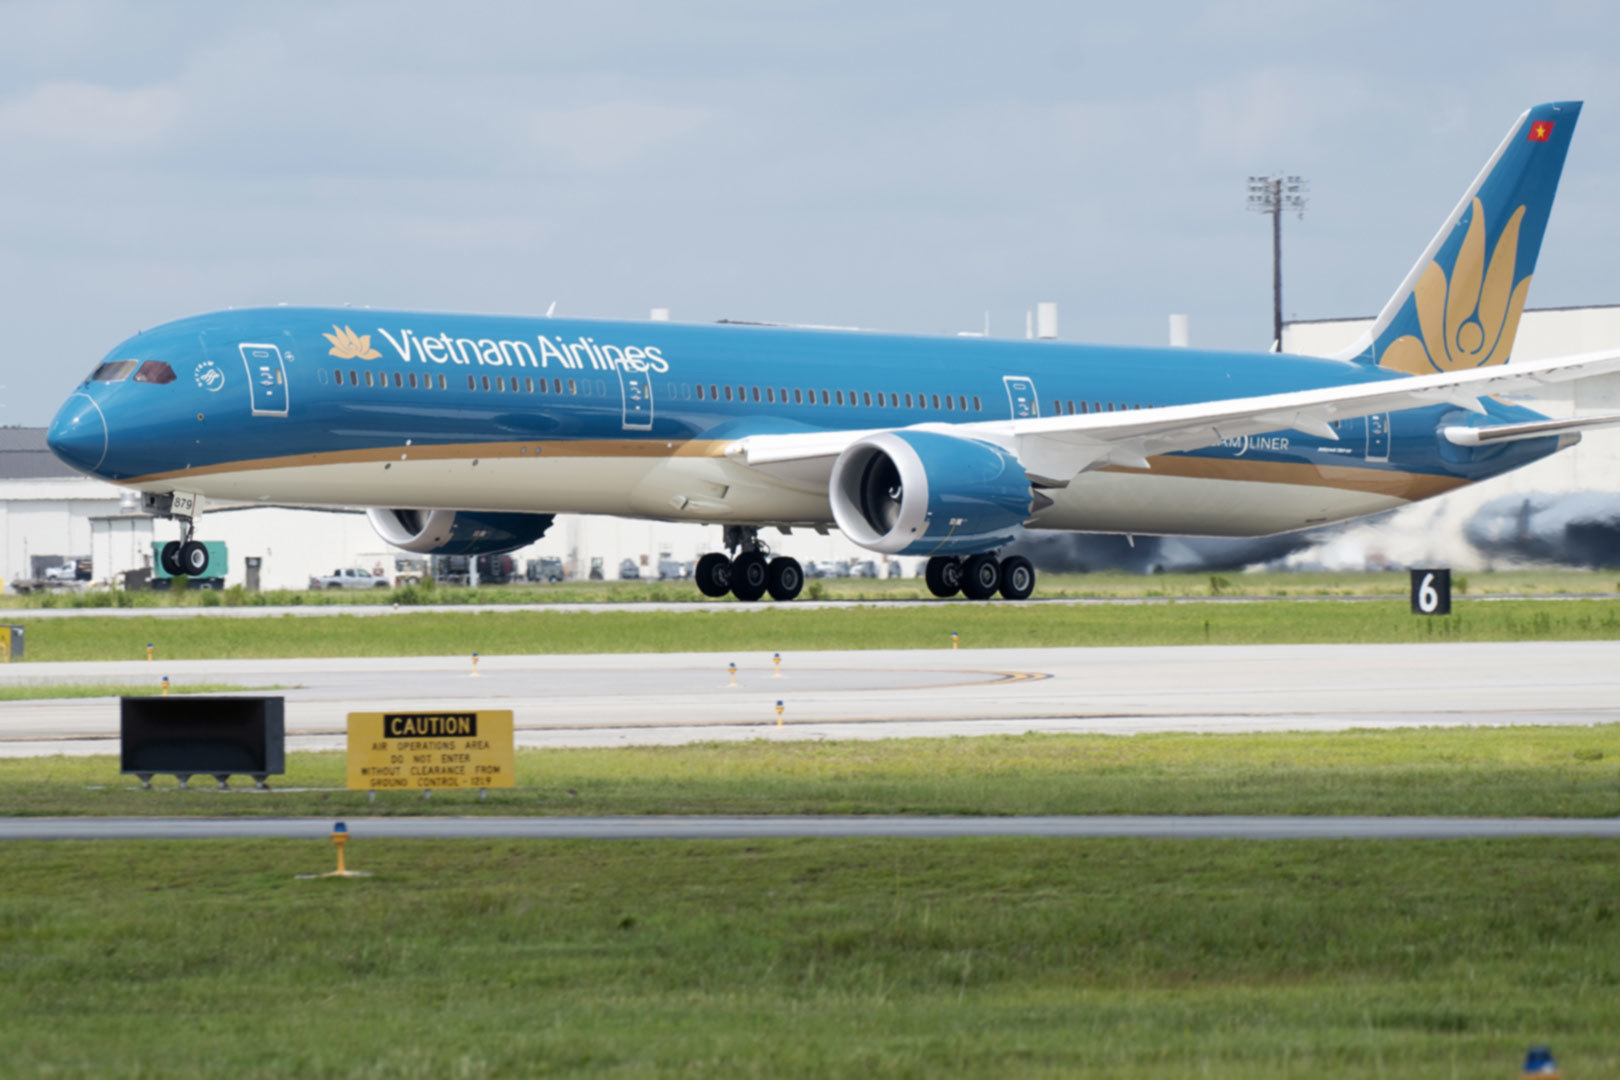 hang bay quoc gia vietnam airlines da lo hon 10 nghin ty dong